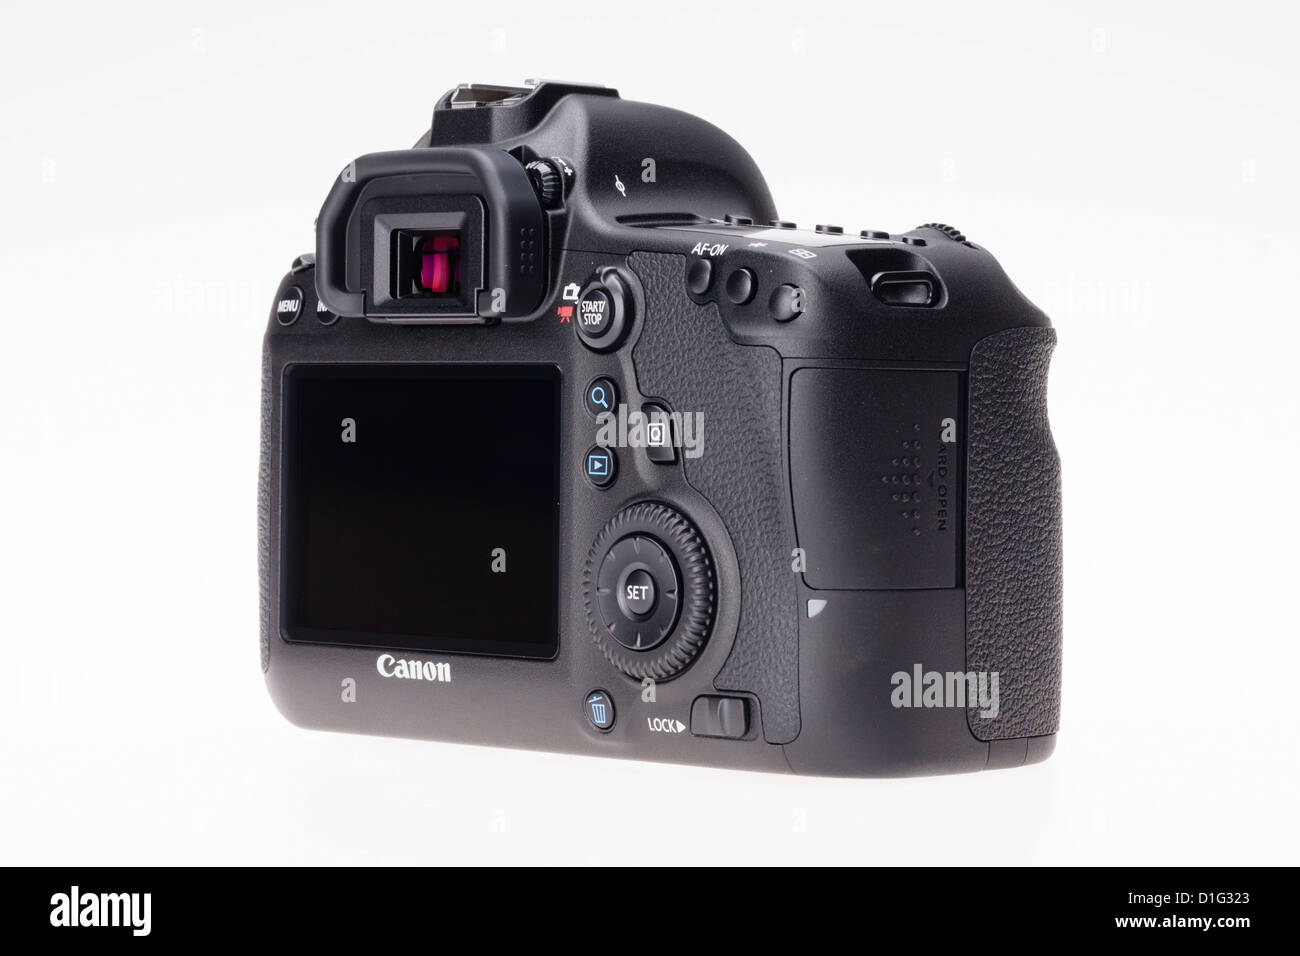 Photographic equipment - Canon EOS 6D full frame DSLR, budget price ...